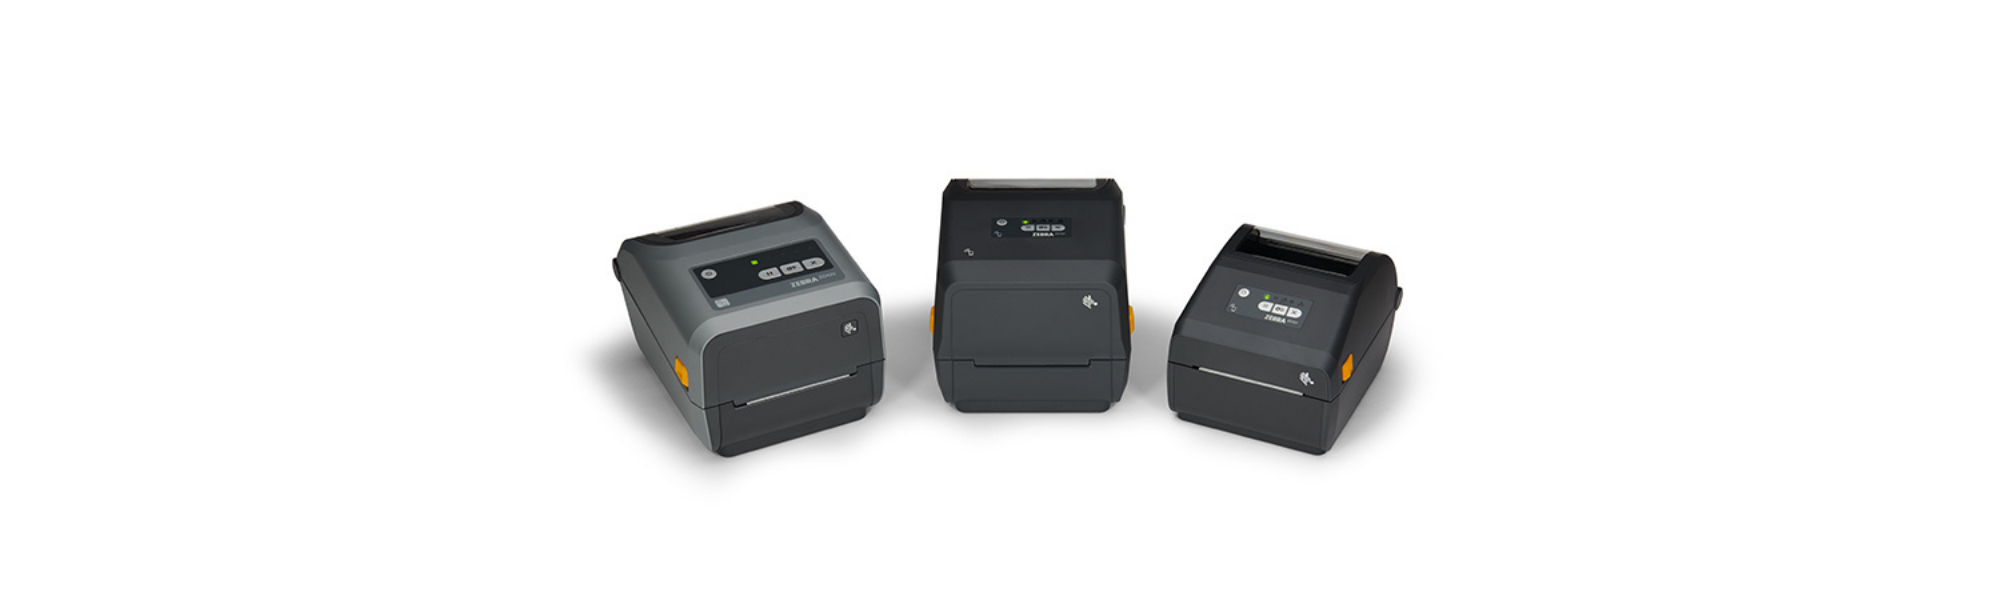 Group photo of ZD421 Printer Series